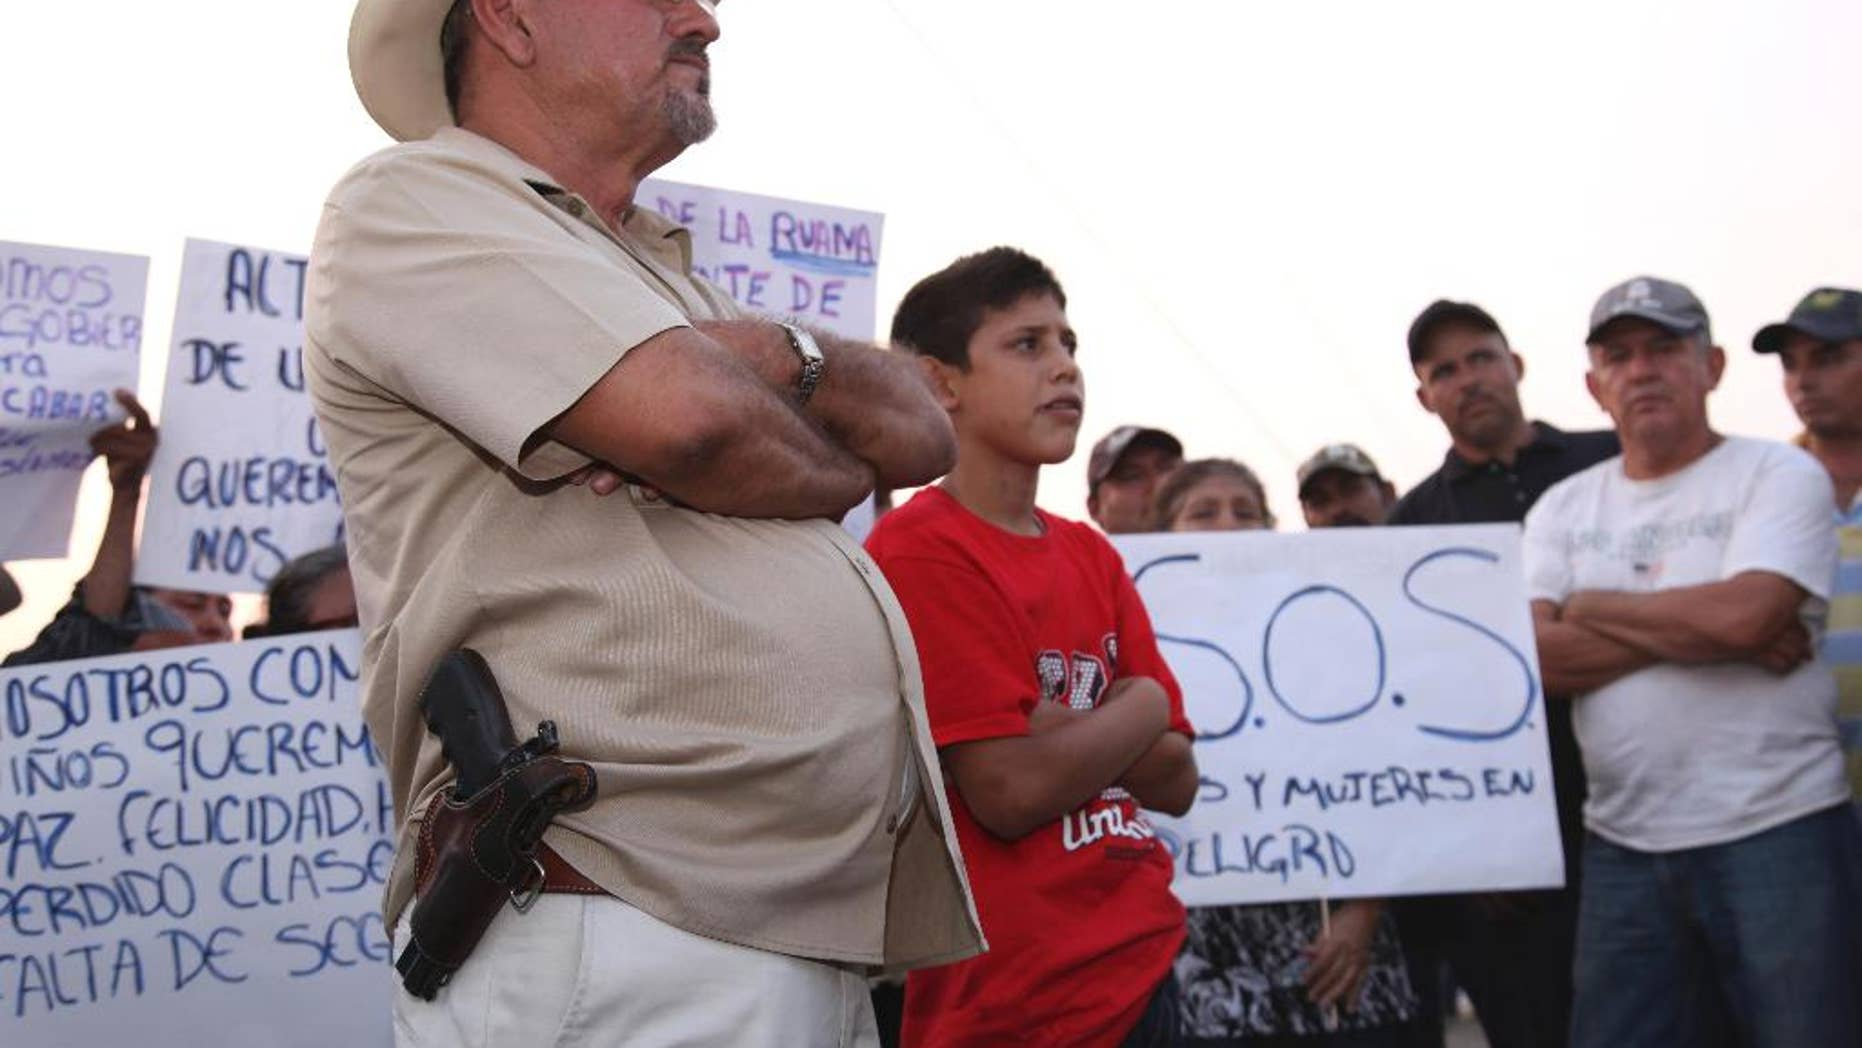 """FILE - In this May 19, 2013 file photo, Hipolito Mora, leader of a local self-defense movement, stands with a side-arm as residents protest extortion fees and kidnappings by the Knights of Templar drug cartel in La Ruana, Mexico. On Dec. 16, 2014, Mora's group had a deadly shootout with a rival rural police force led by Luis Antonio Torres, better known as """"Simon the American,"""" that left 11 people dead, including Mora's son, in the remote mountain town of La Ruana, Michoacan. On Saturday, Jan. 3, 2015, a judge said there was sufficient evidence against Mora and his followers of involvement in 10 homicides during the shootout to merit the launch of homicide proceedings. (AP Photo/Marco Ugarte, File)"""